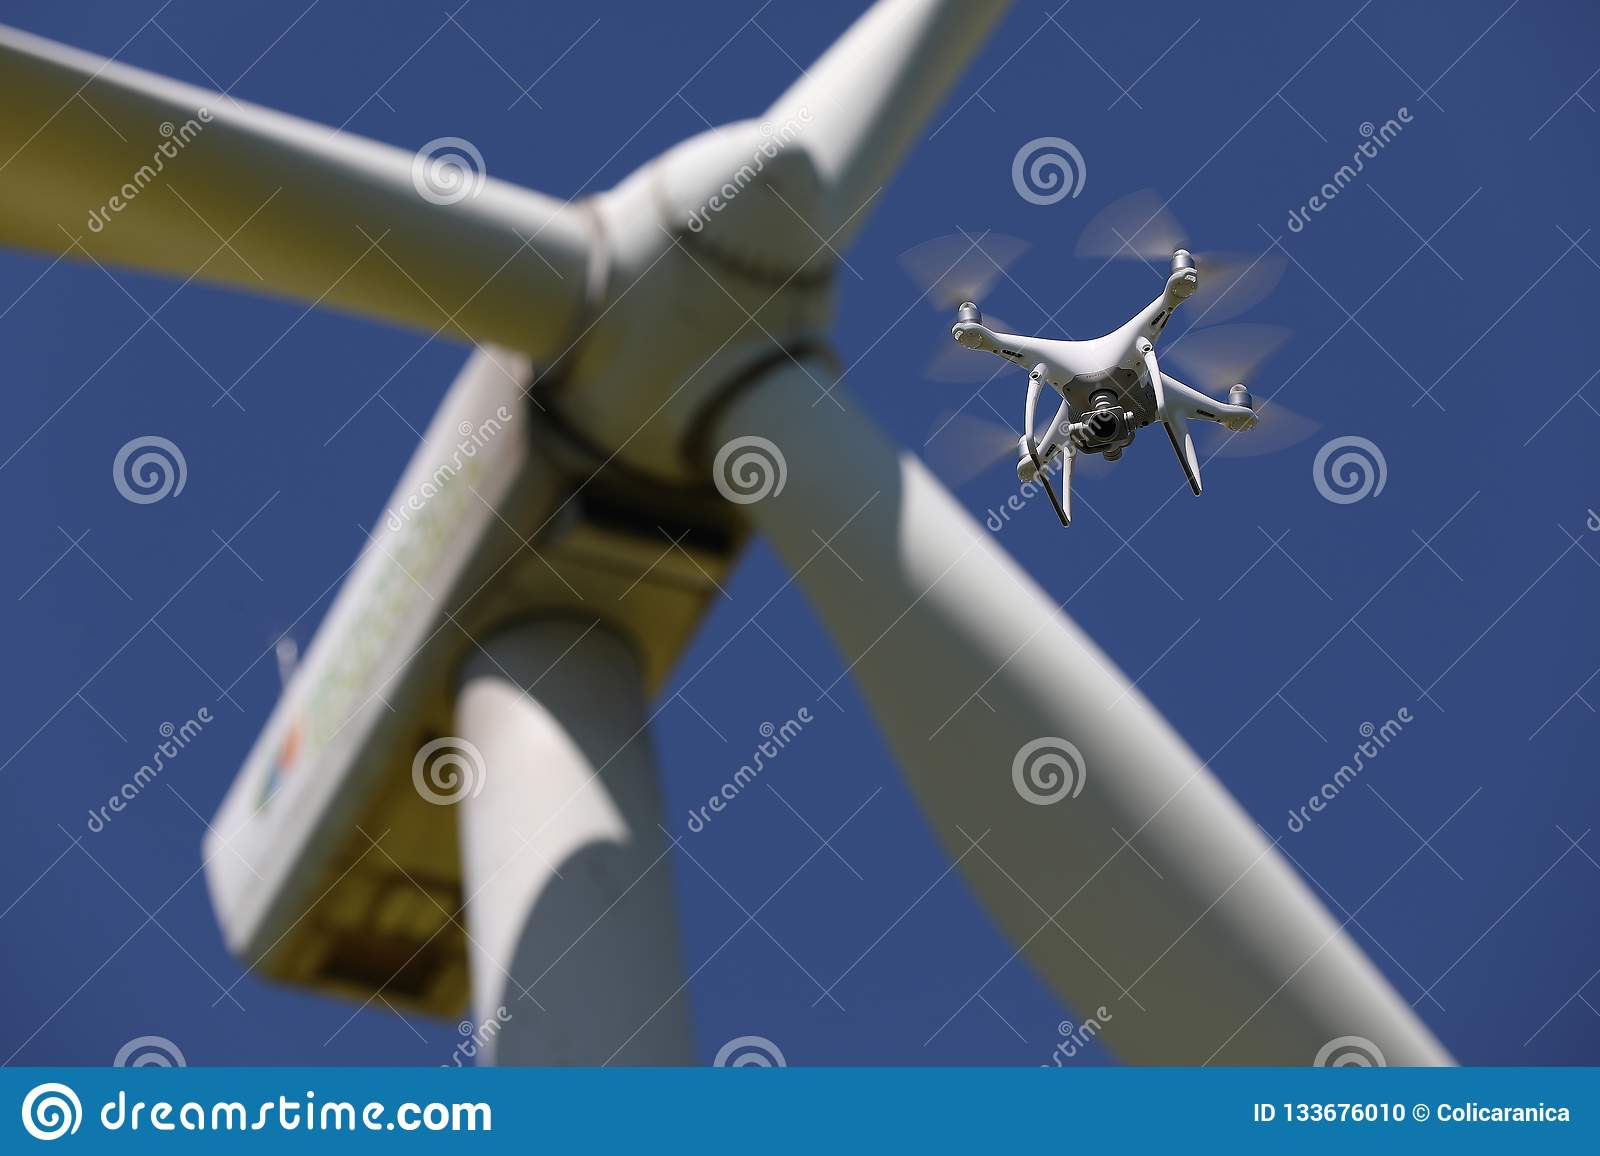 Drone hovering over wind turbines, renewable energy